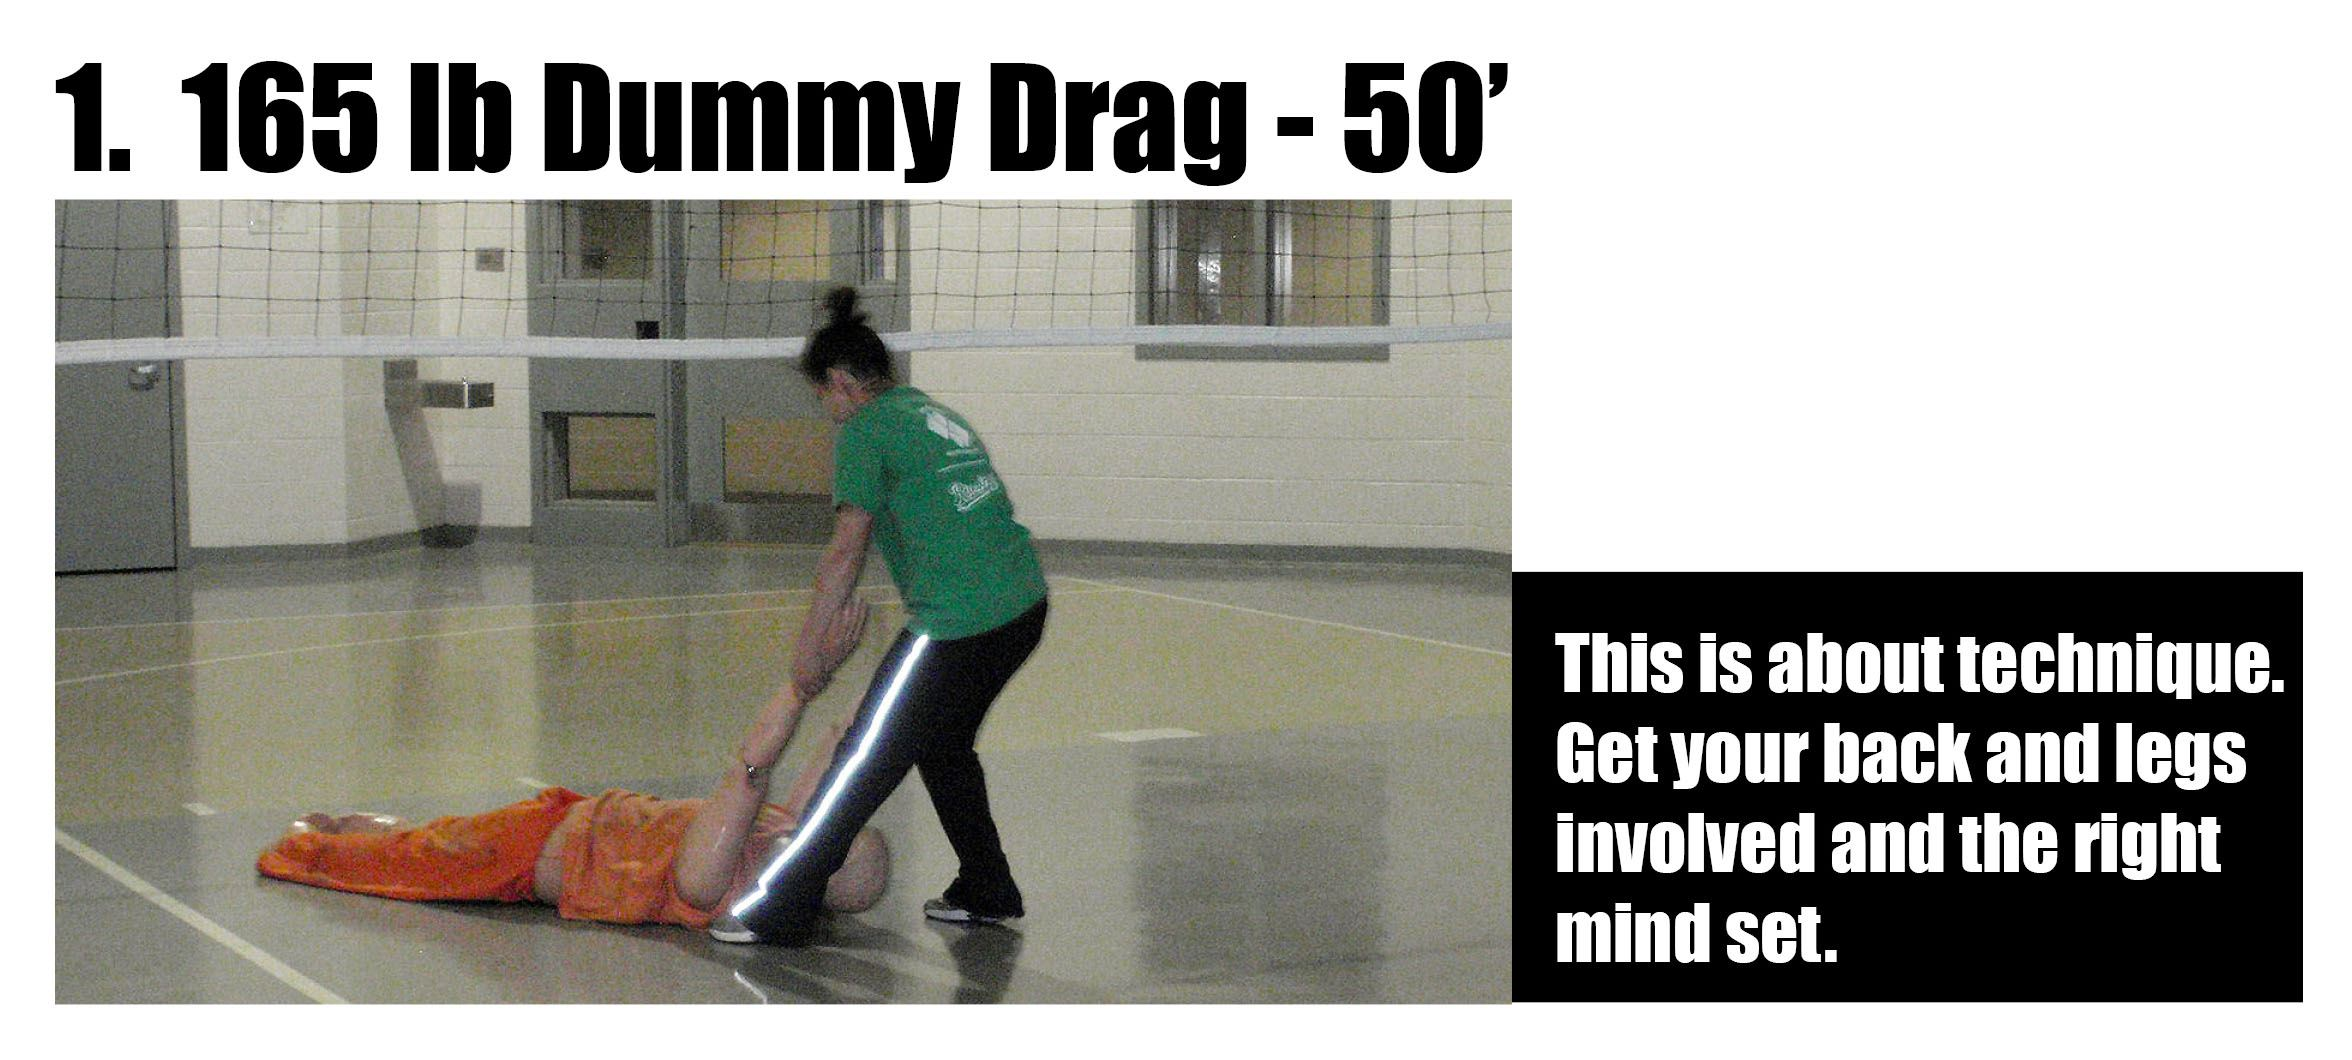 dummy drag graphic